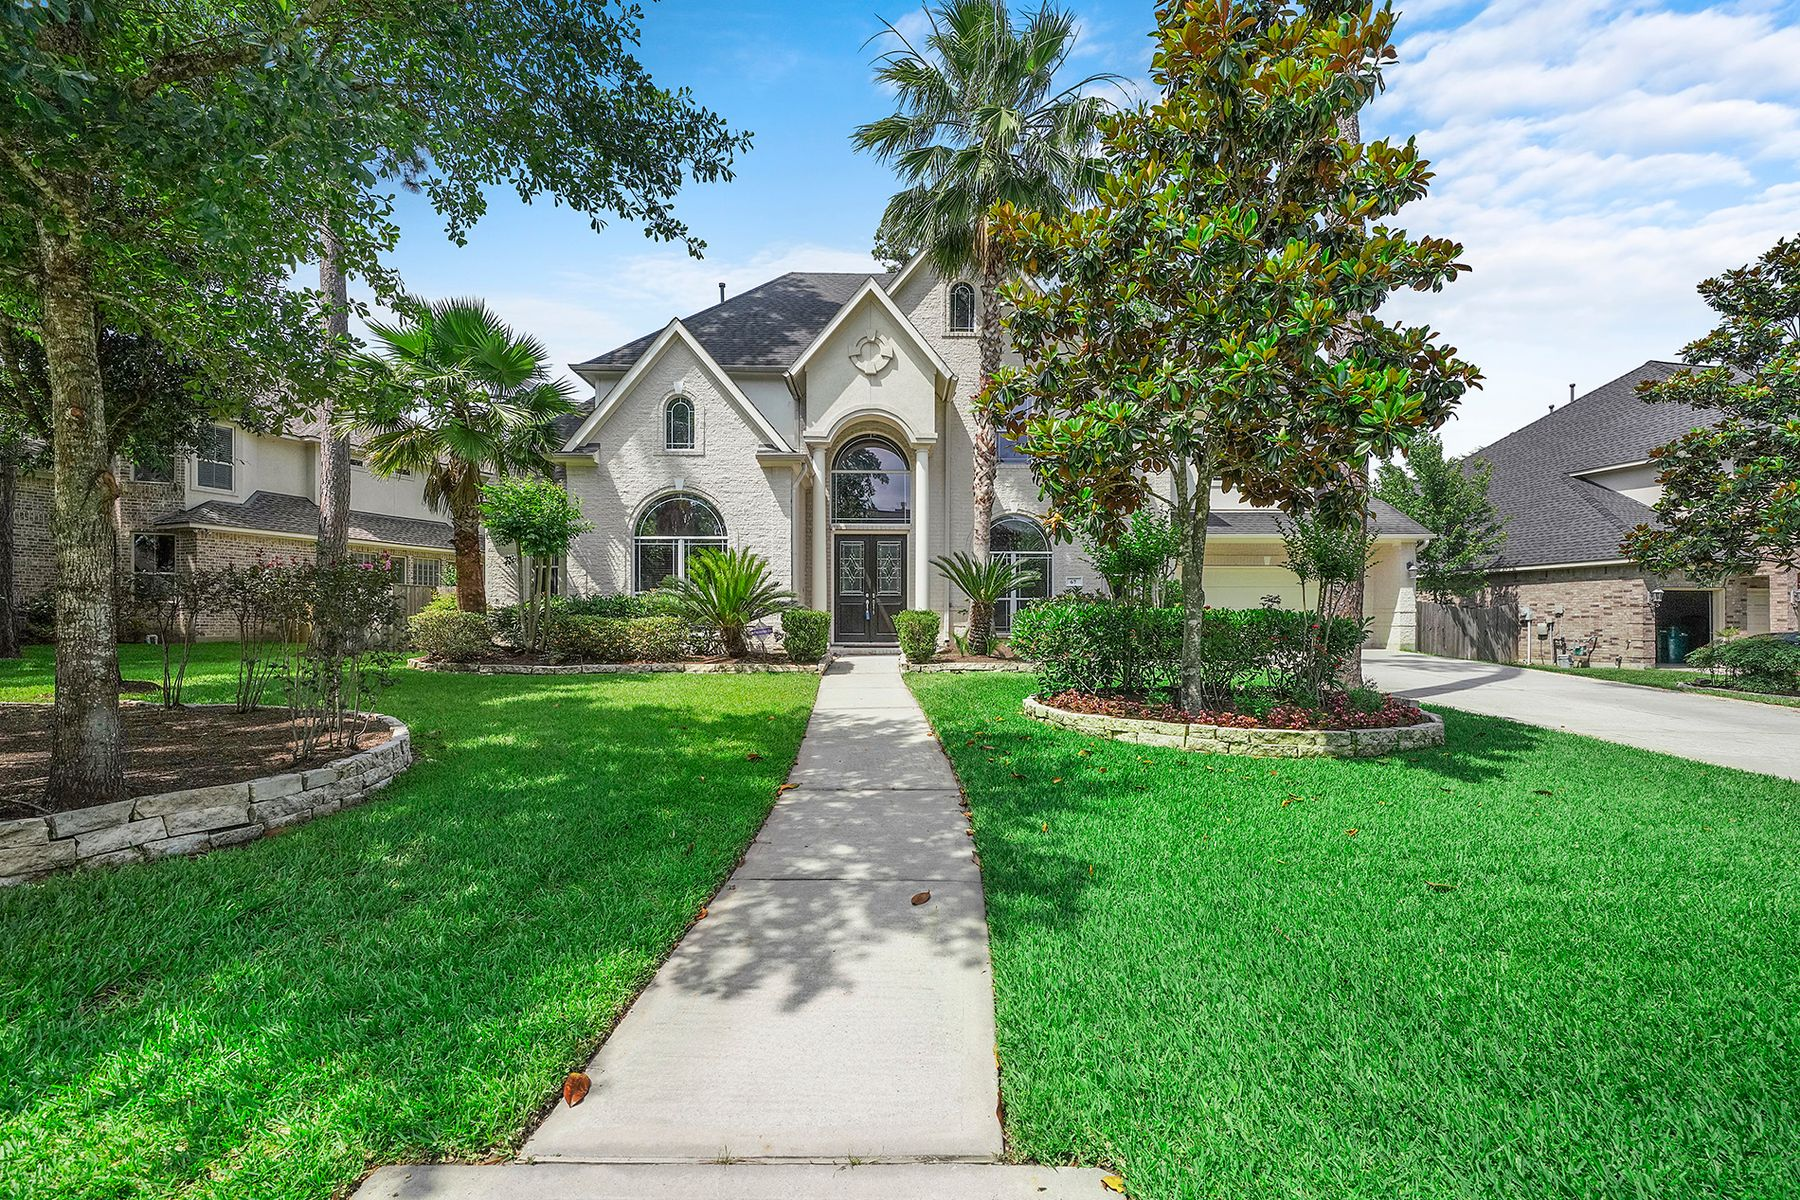 Single Family Homes for Sale at 67 Old Sterling Circle The Woodlands, Texas 77382 United States